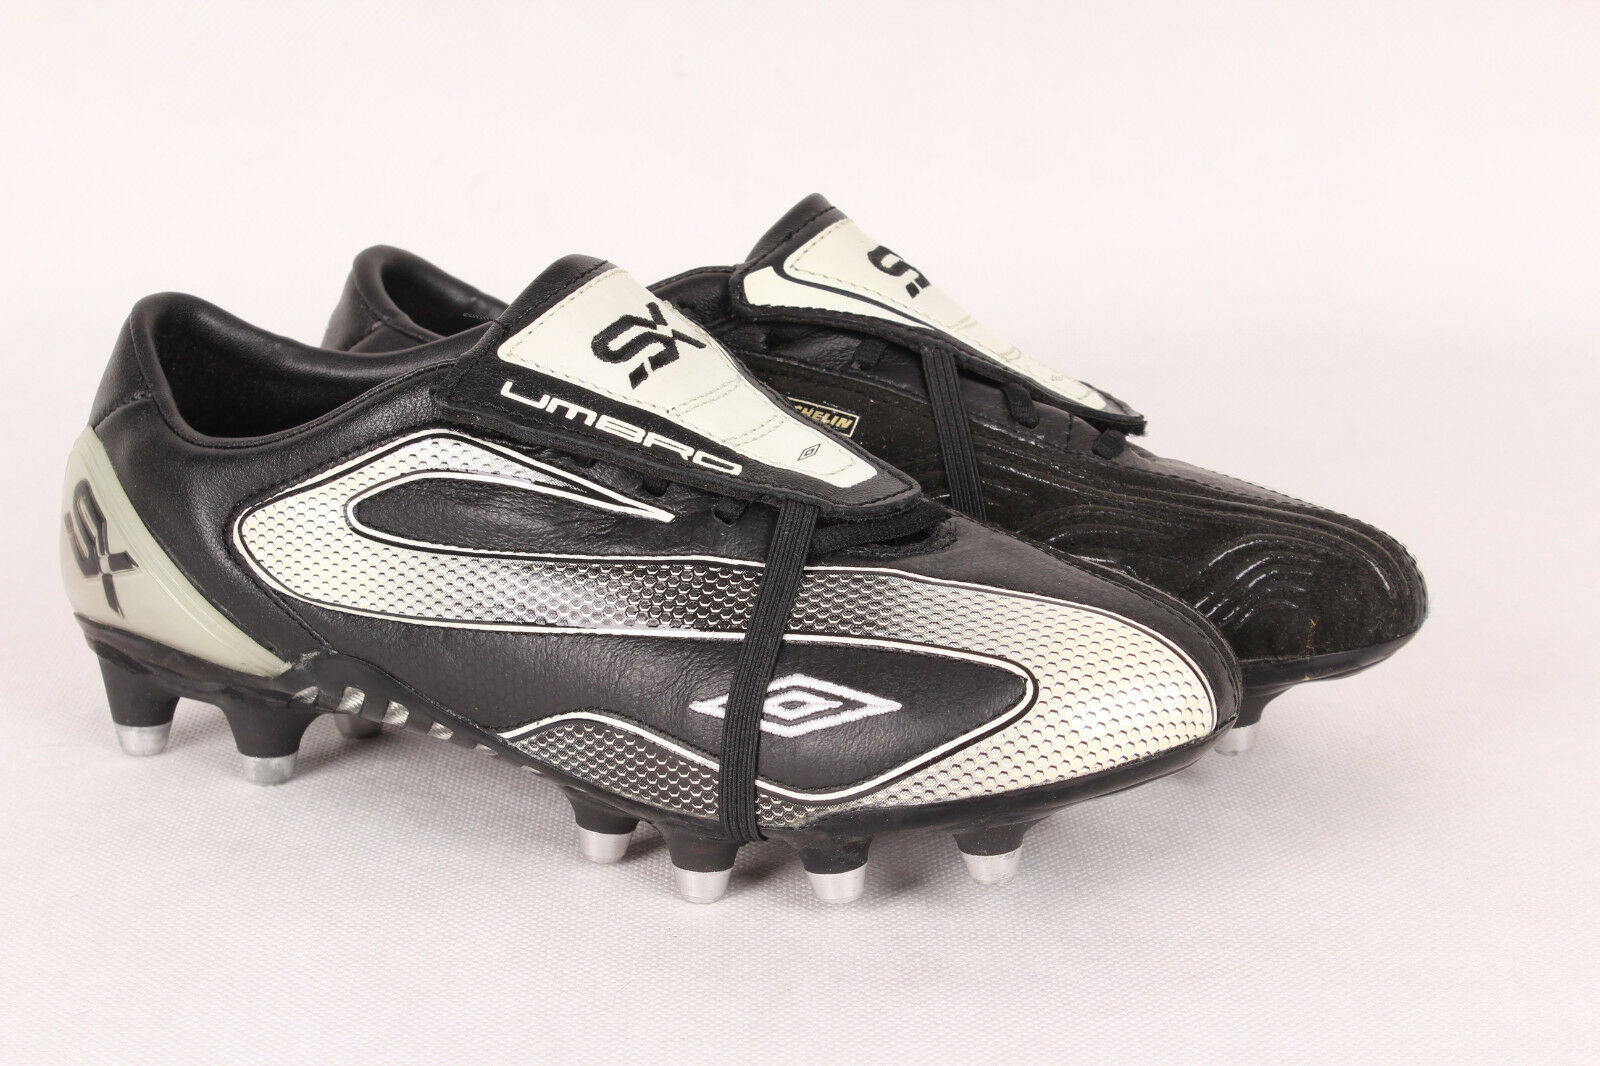 Umbro SPECIALI SX-FLARE-A HG HGM METAL METAL METAL Football Stiefel Soccer Cleats (RARE) dbc3bd